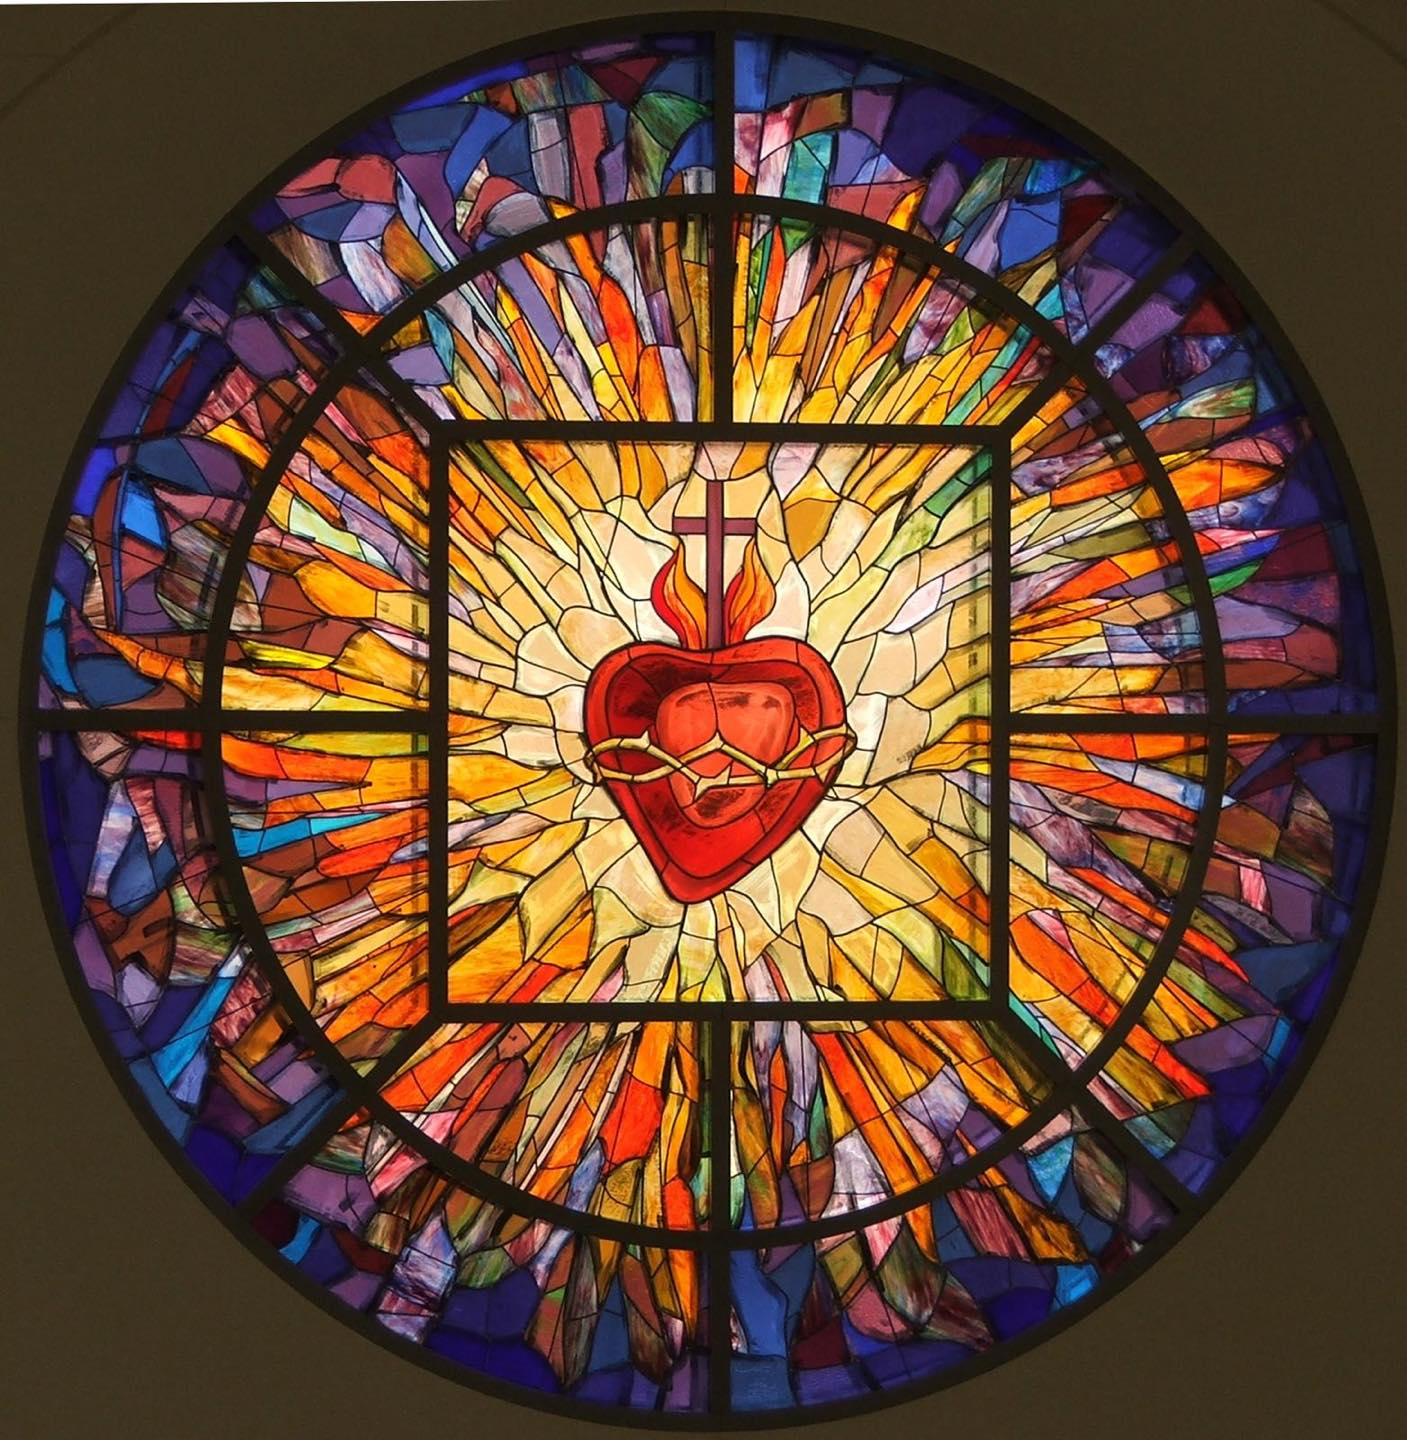 Sacred Heart transept stained glass window